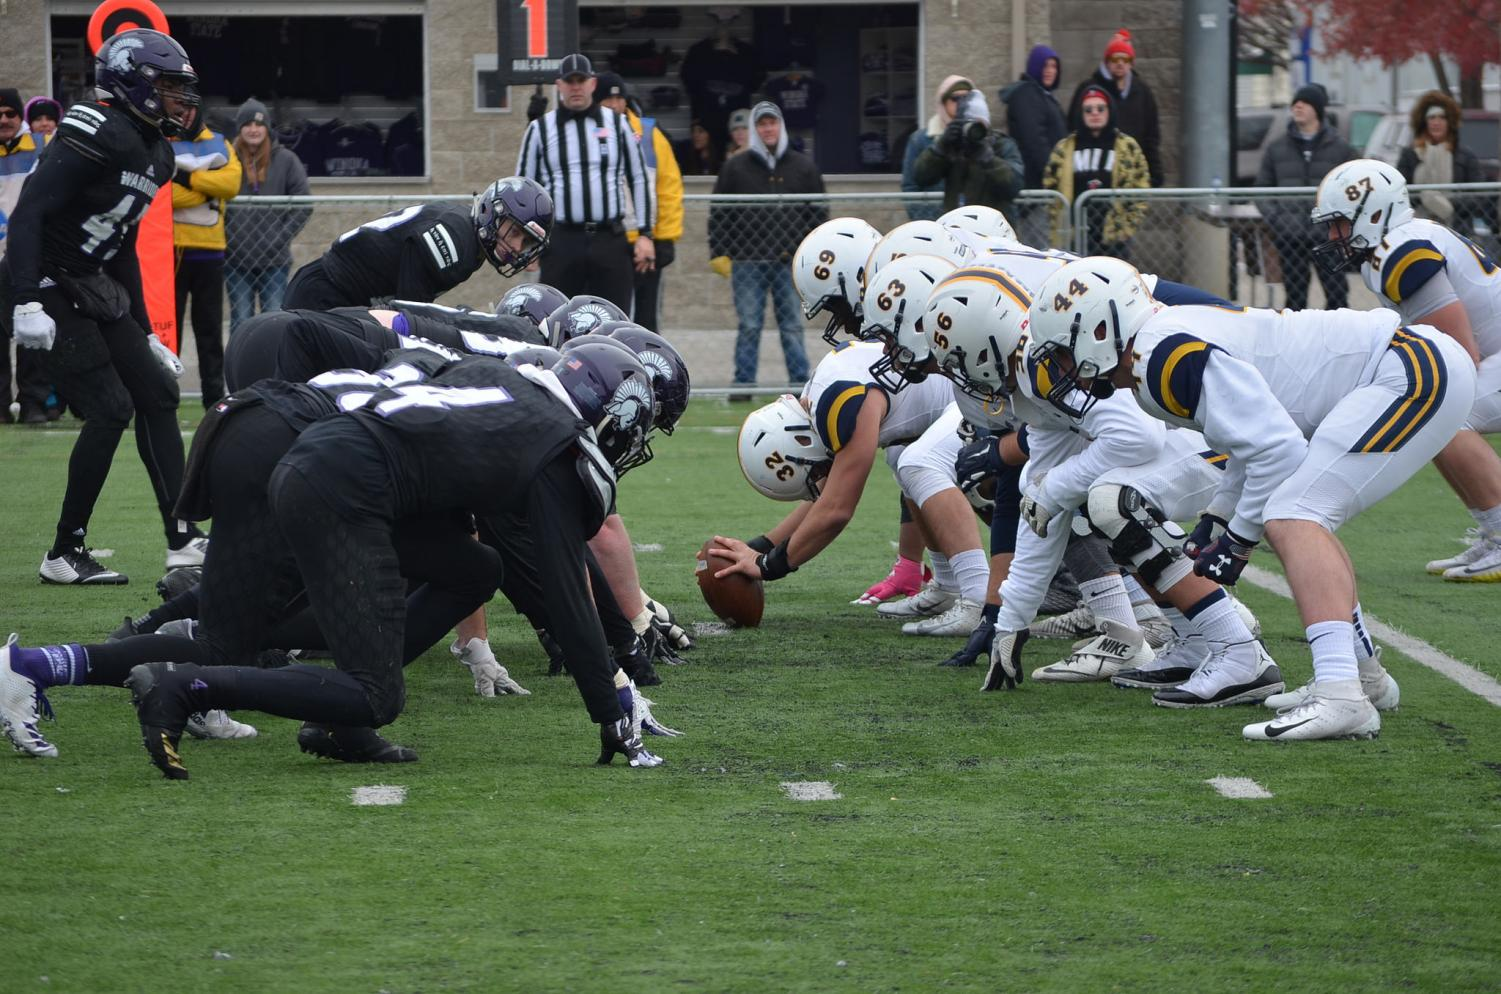 The Winona State Football team faced off against Concordia University, St. Paul on Saturday, November 10 at Altra Federal Credit Union Stadium. The Warriors ended the last game of the year and senior day on a high note, taking home a close win with a score of 24-20.